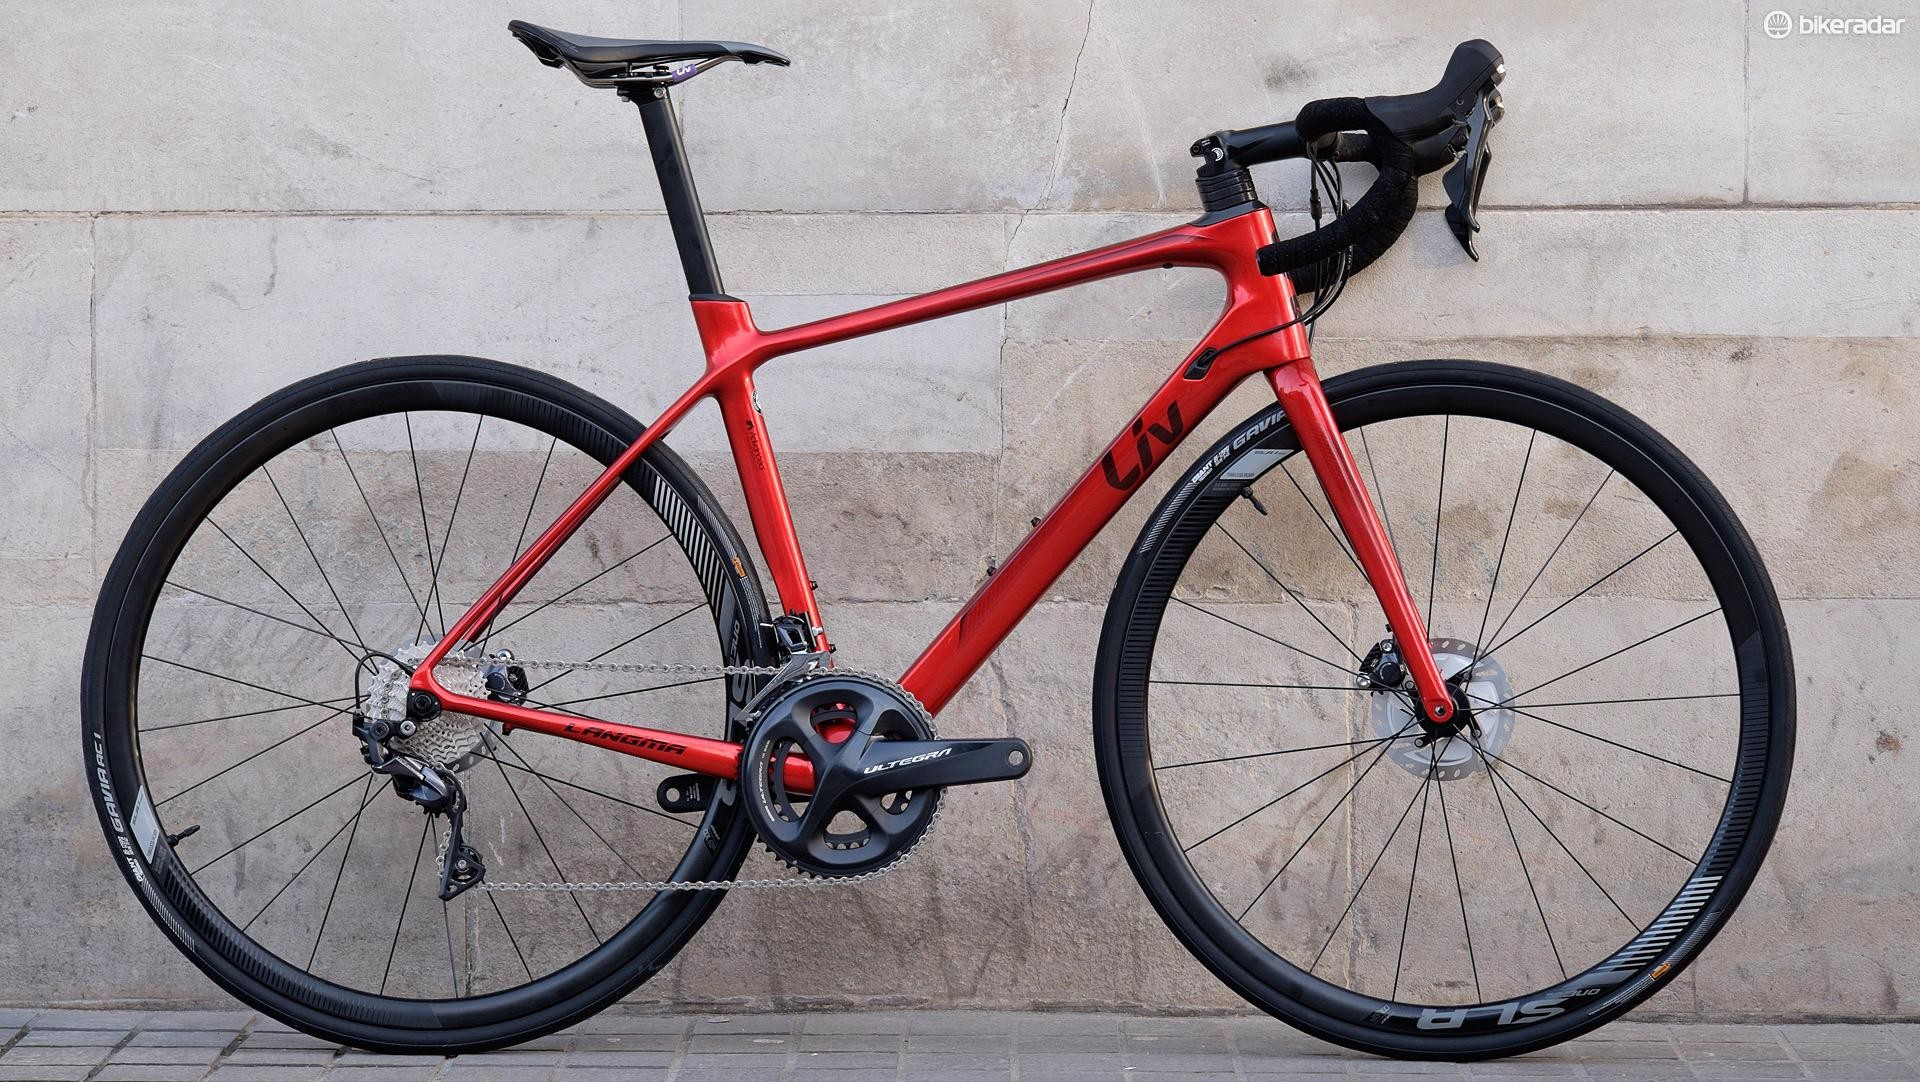 A lower-priced and disc-brake equipped version of the top-end Langma Advanced SL reviewed recently